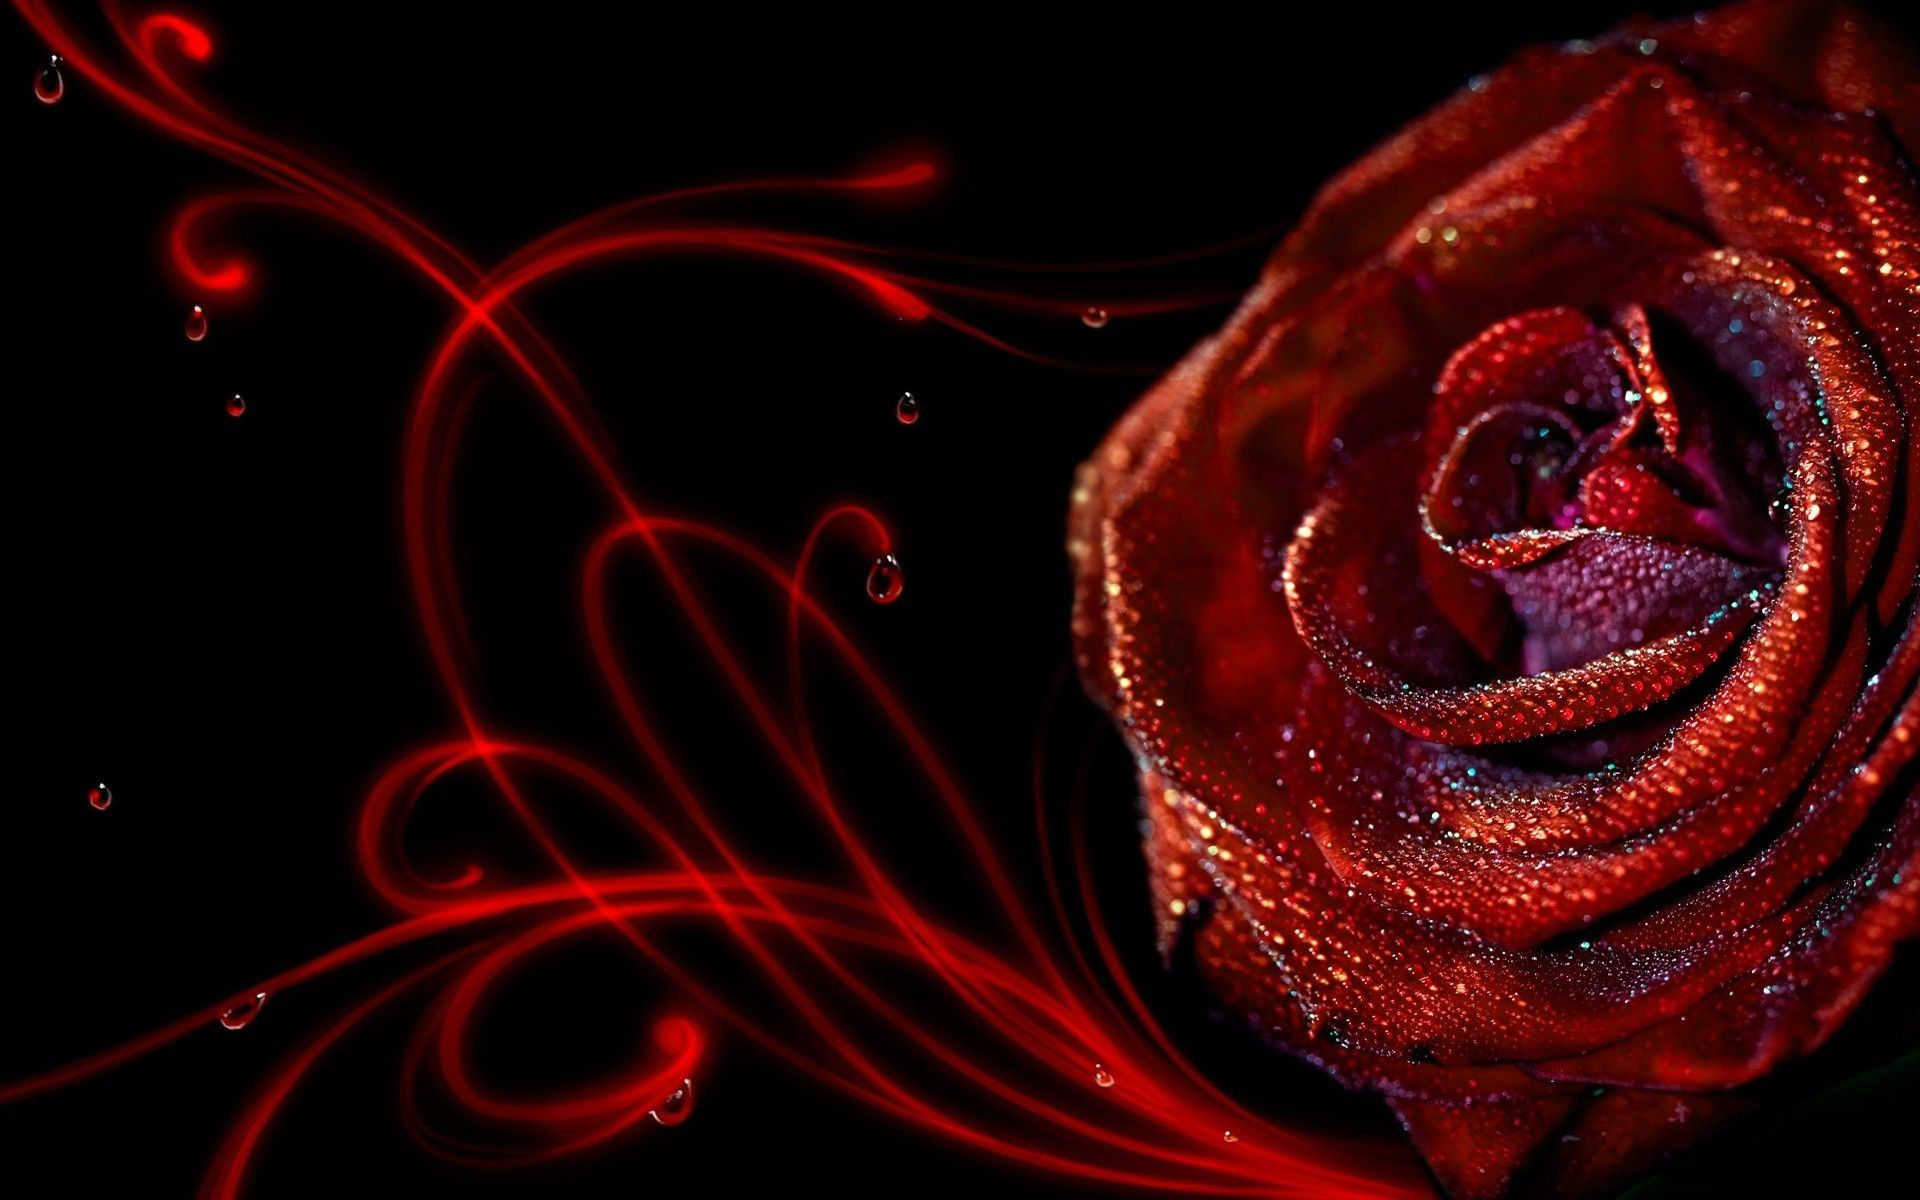 Hd Wallpaper 3d Rose